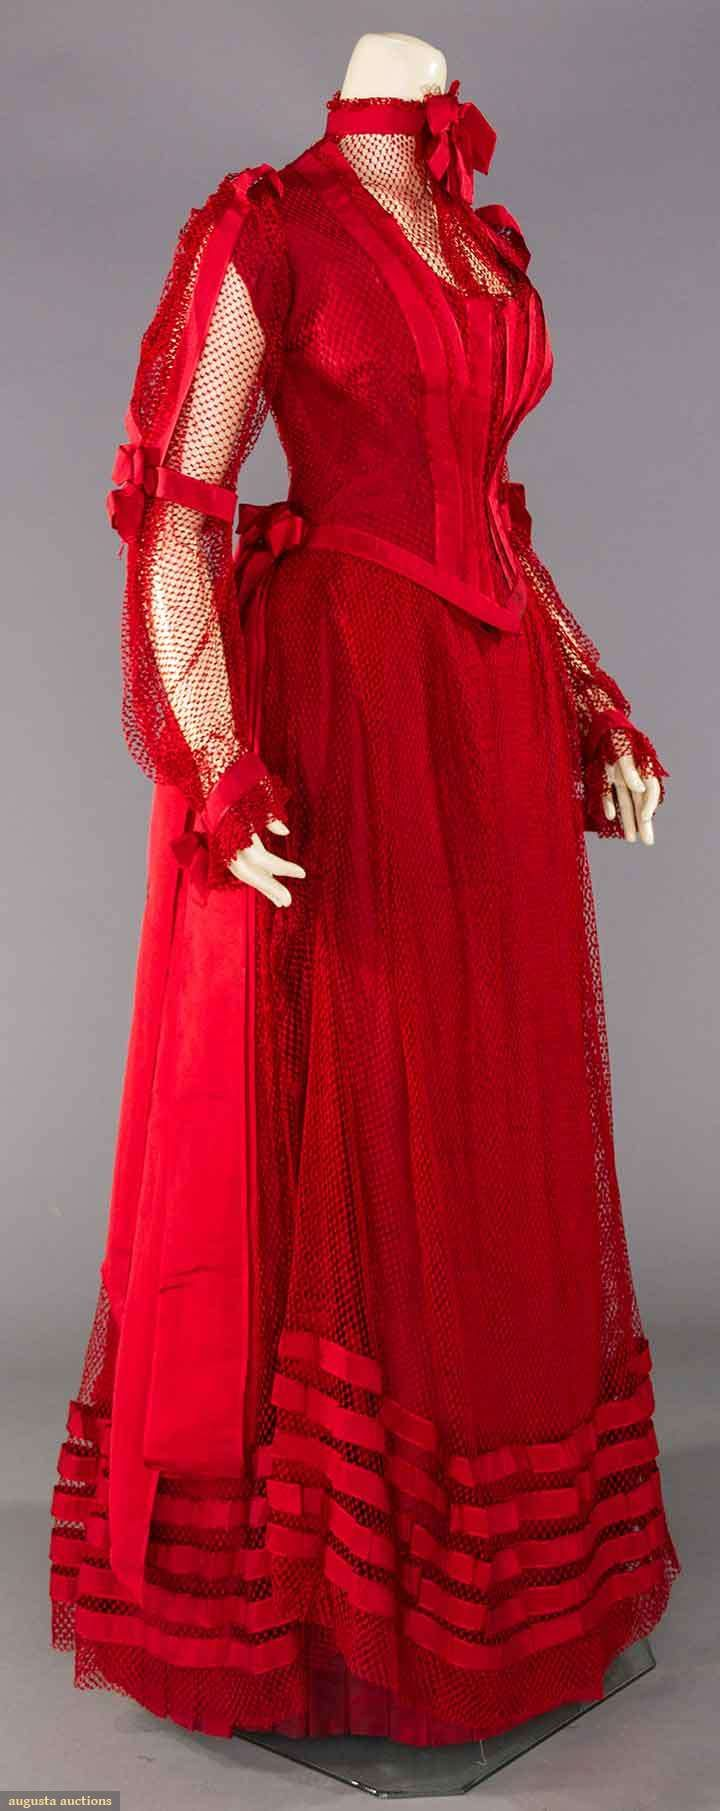 Scarlett PARTY GOWN, PITTSBURG, PA. c. 1890